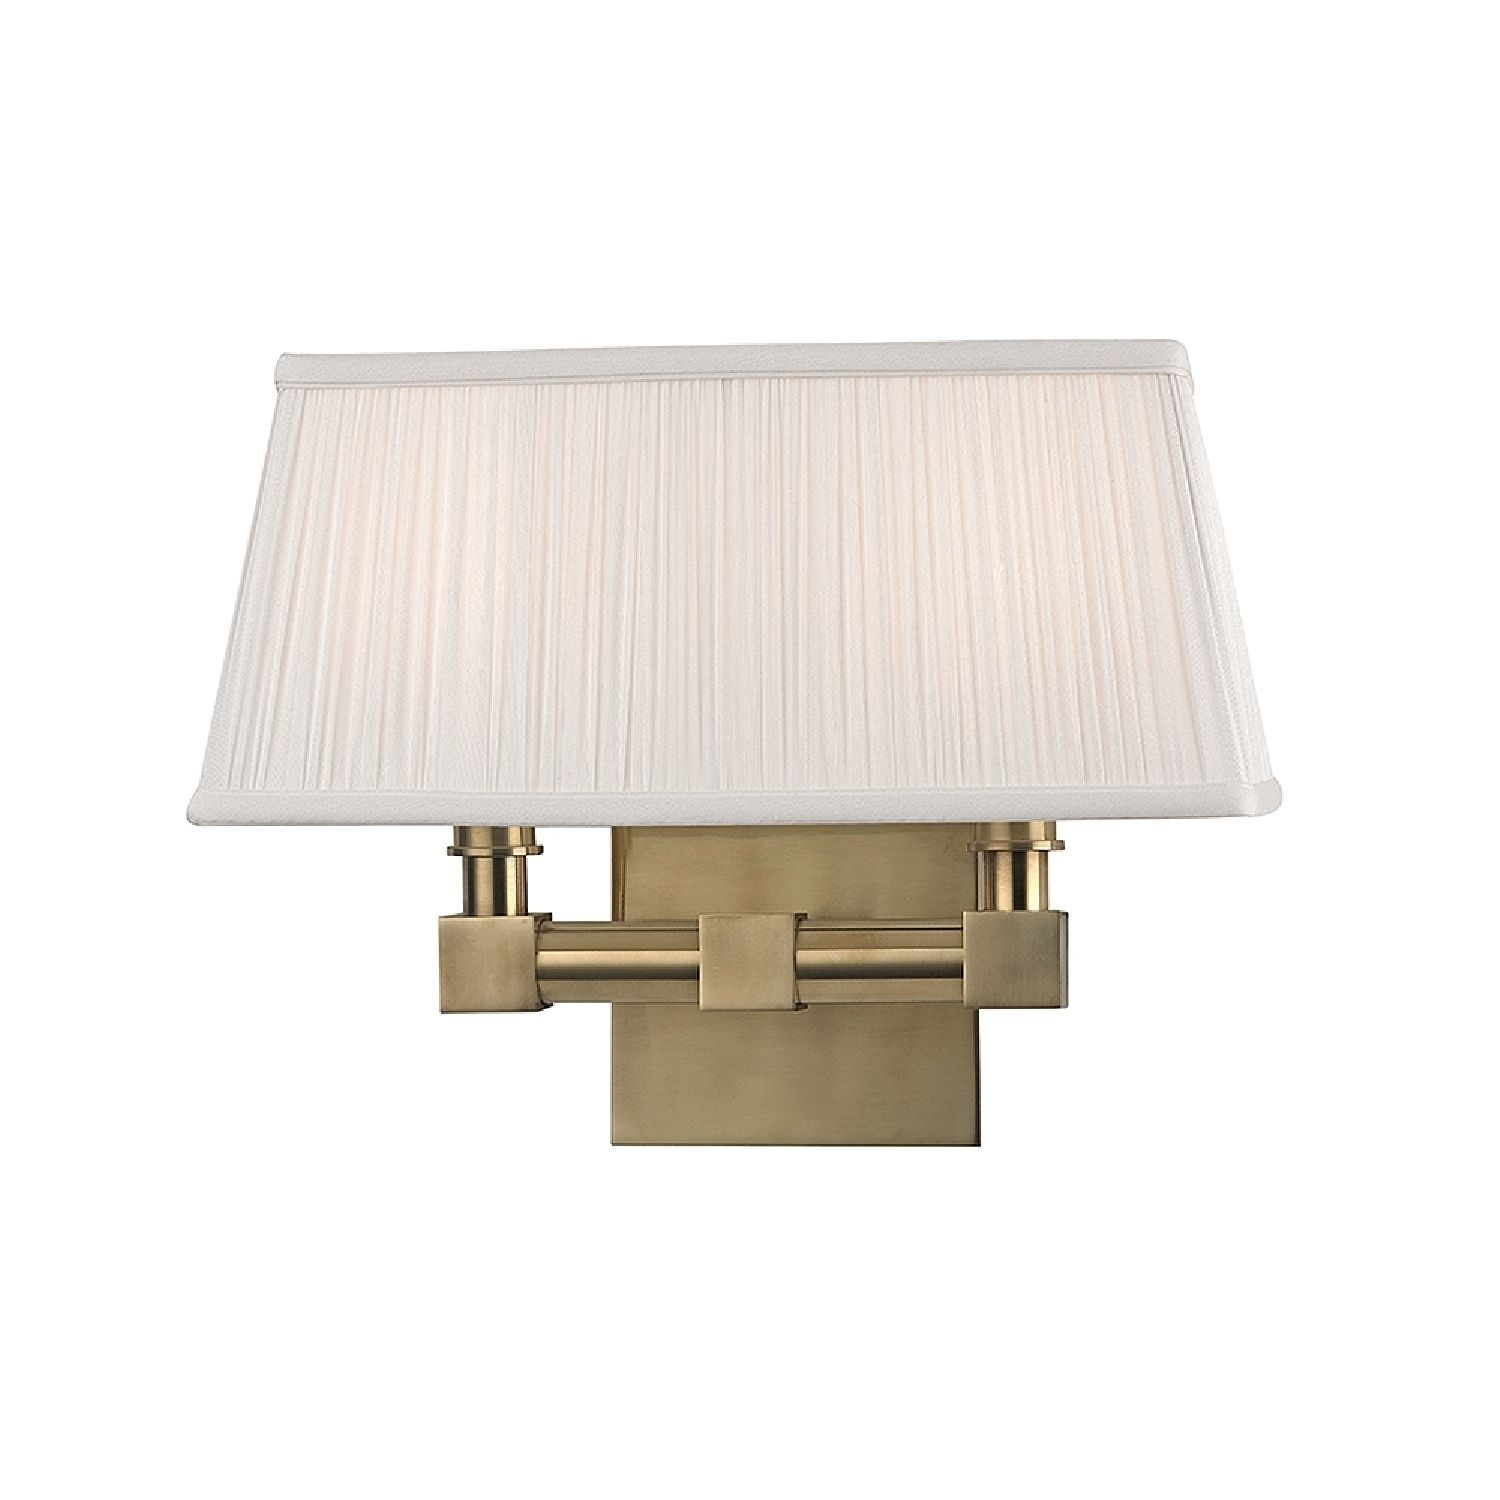 Hudson Valley Lighting 4042 Dixon 2 Light Wall Sconce With